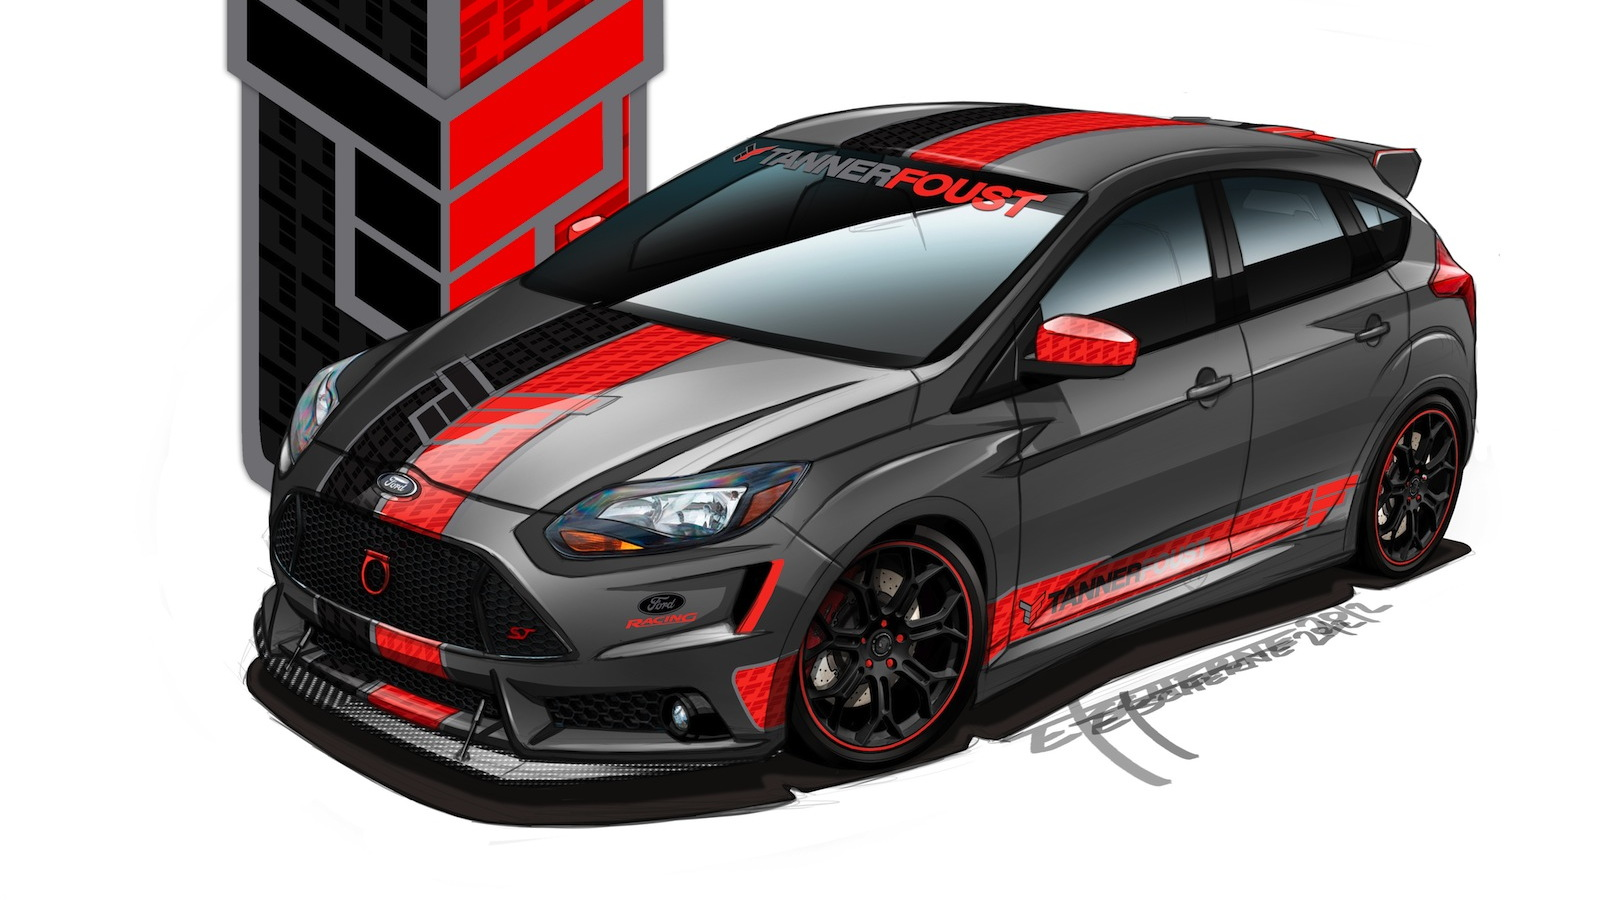 2013 Ford Focus ST built by Tanner Foust Racing for SEMA 2012